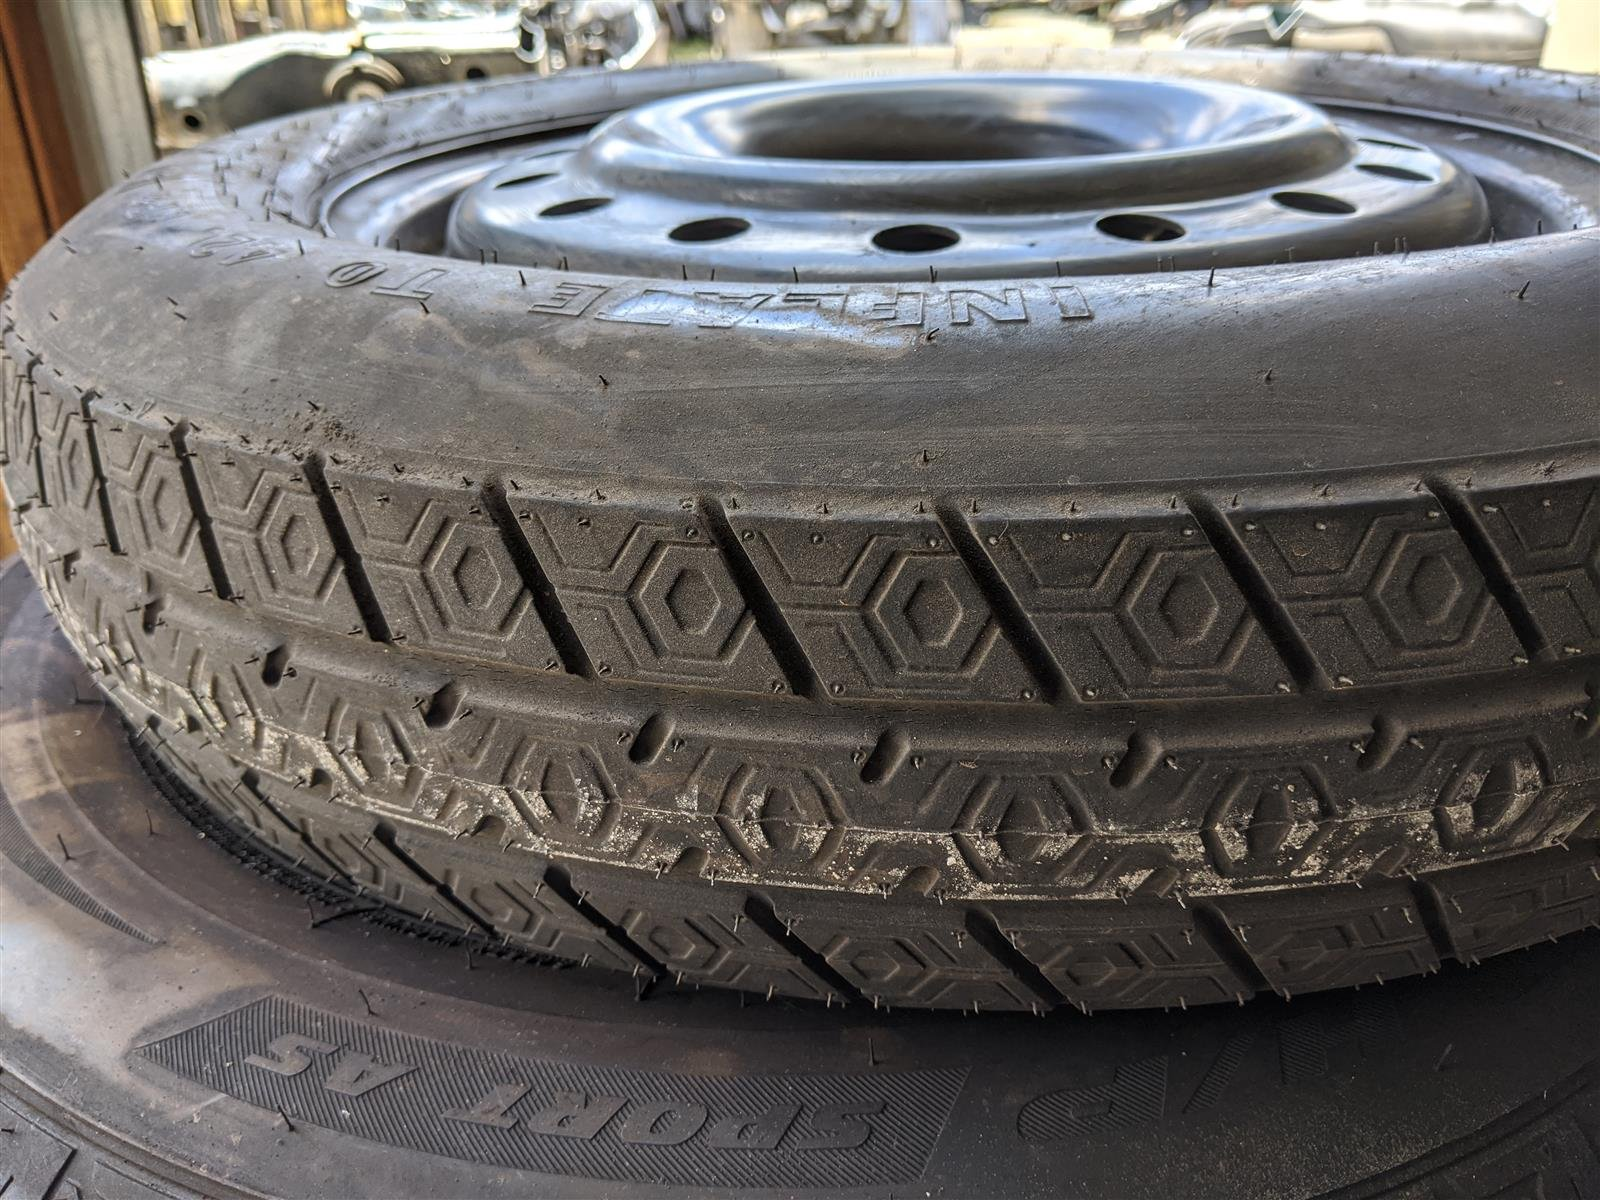 2016 Honda Pilot 17 Inch Spare Rim And Tire Nice Replacement